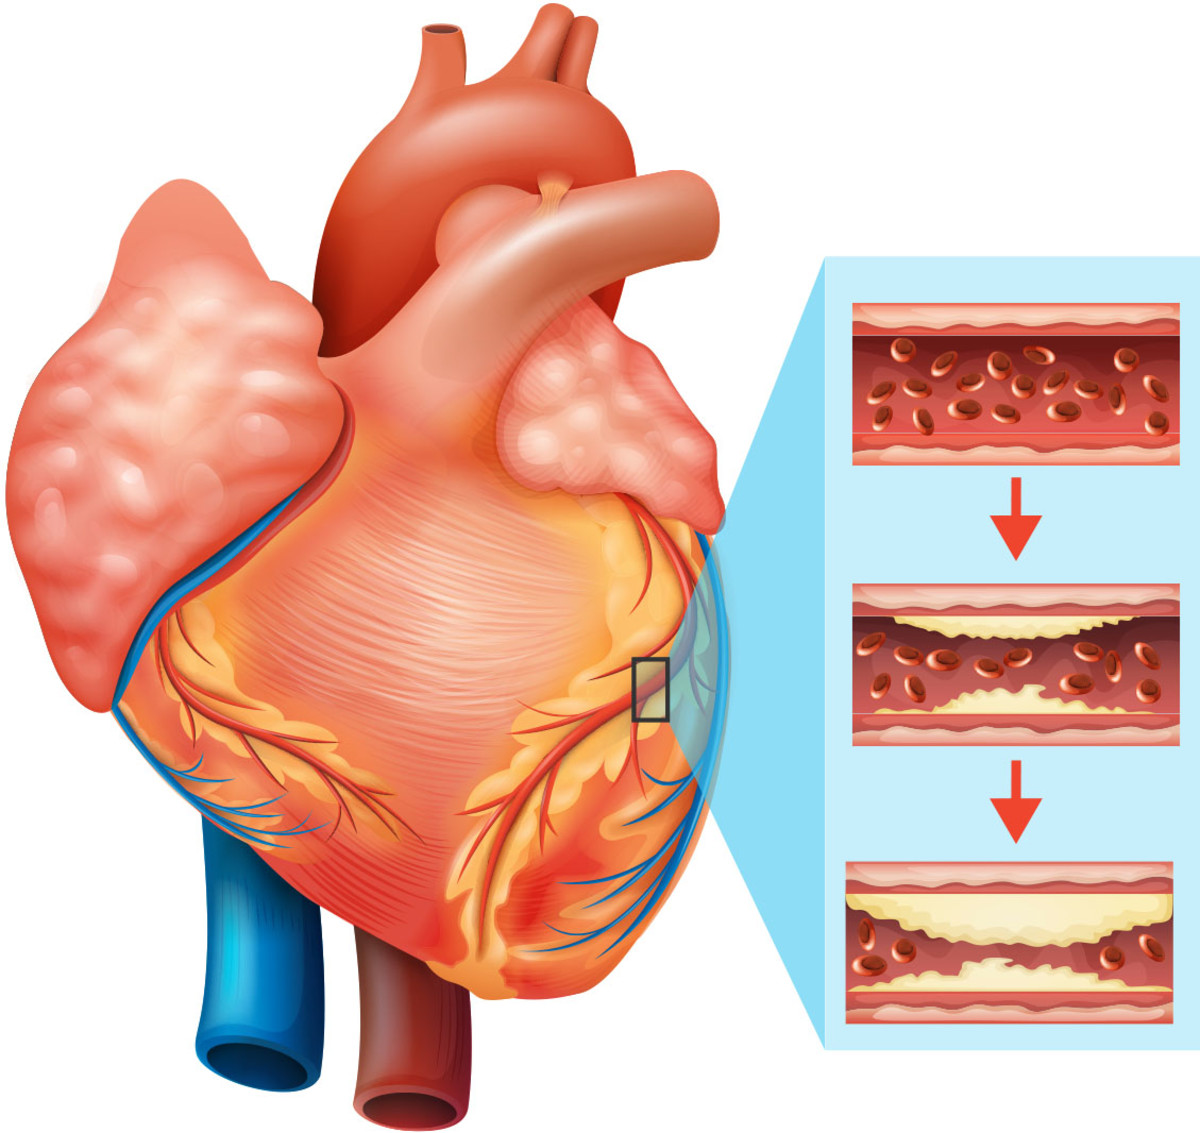 Plaque build-up in the arteries can restrict blood flow. However, this issue is often hard to diagnose.